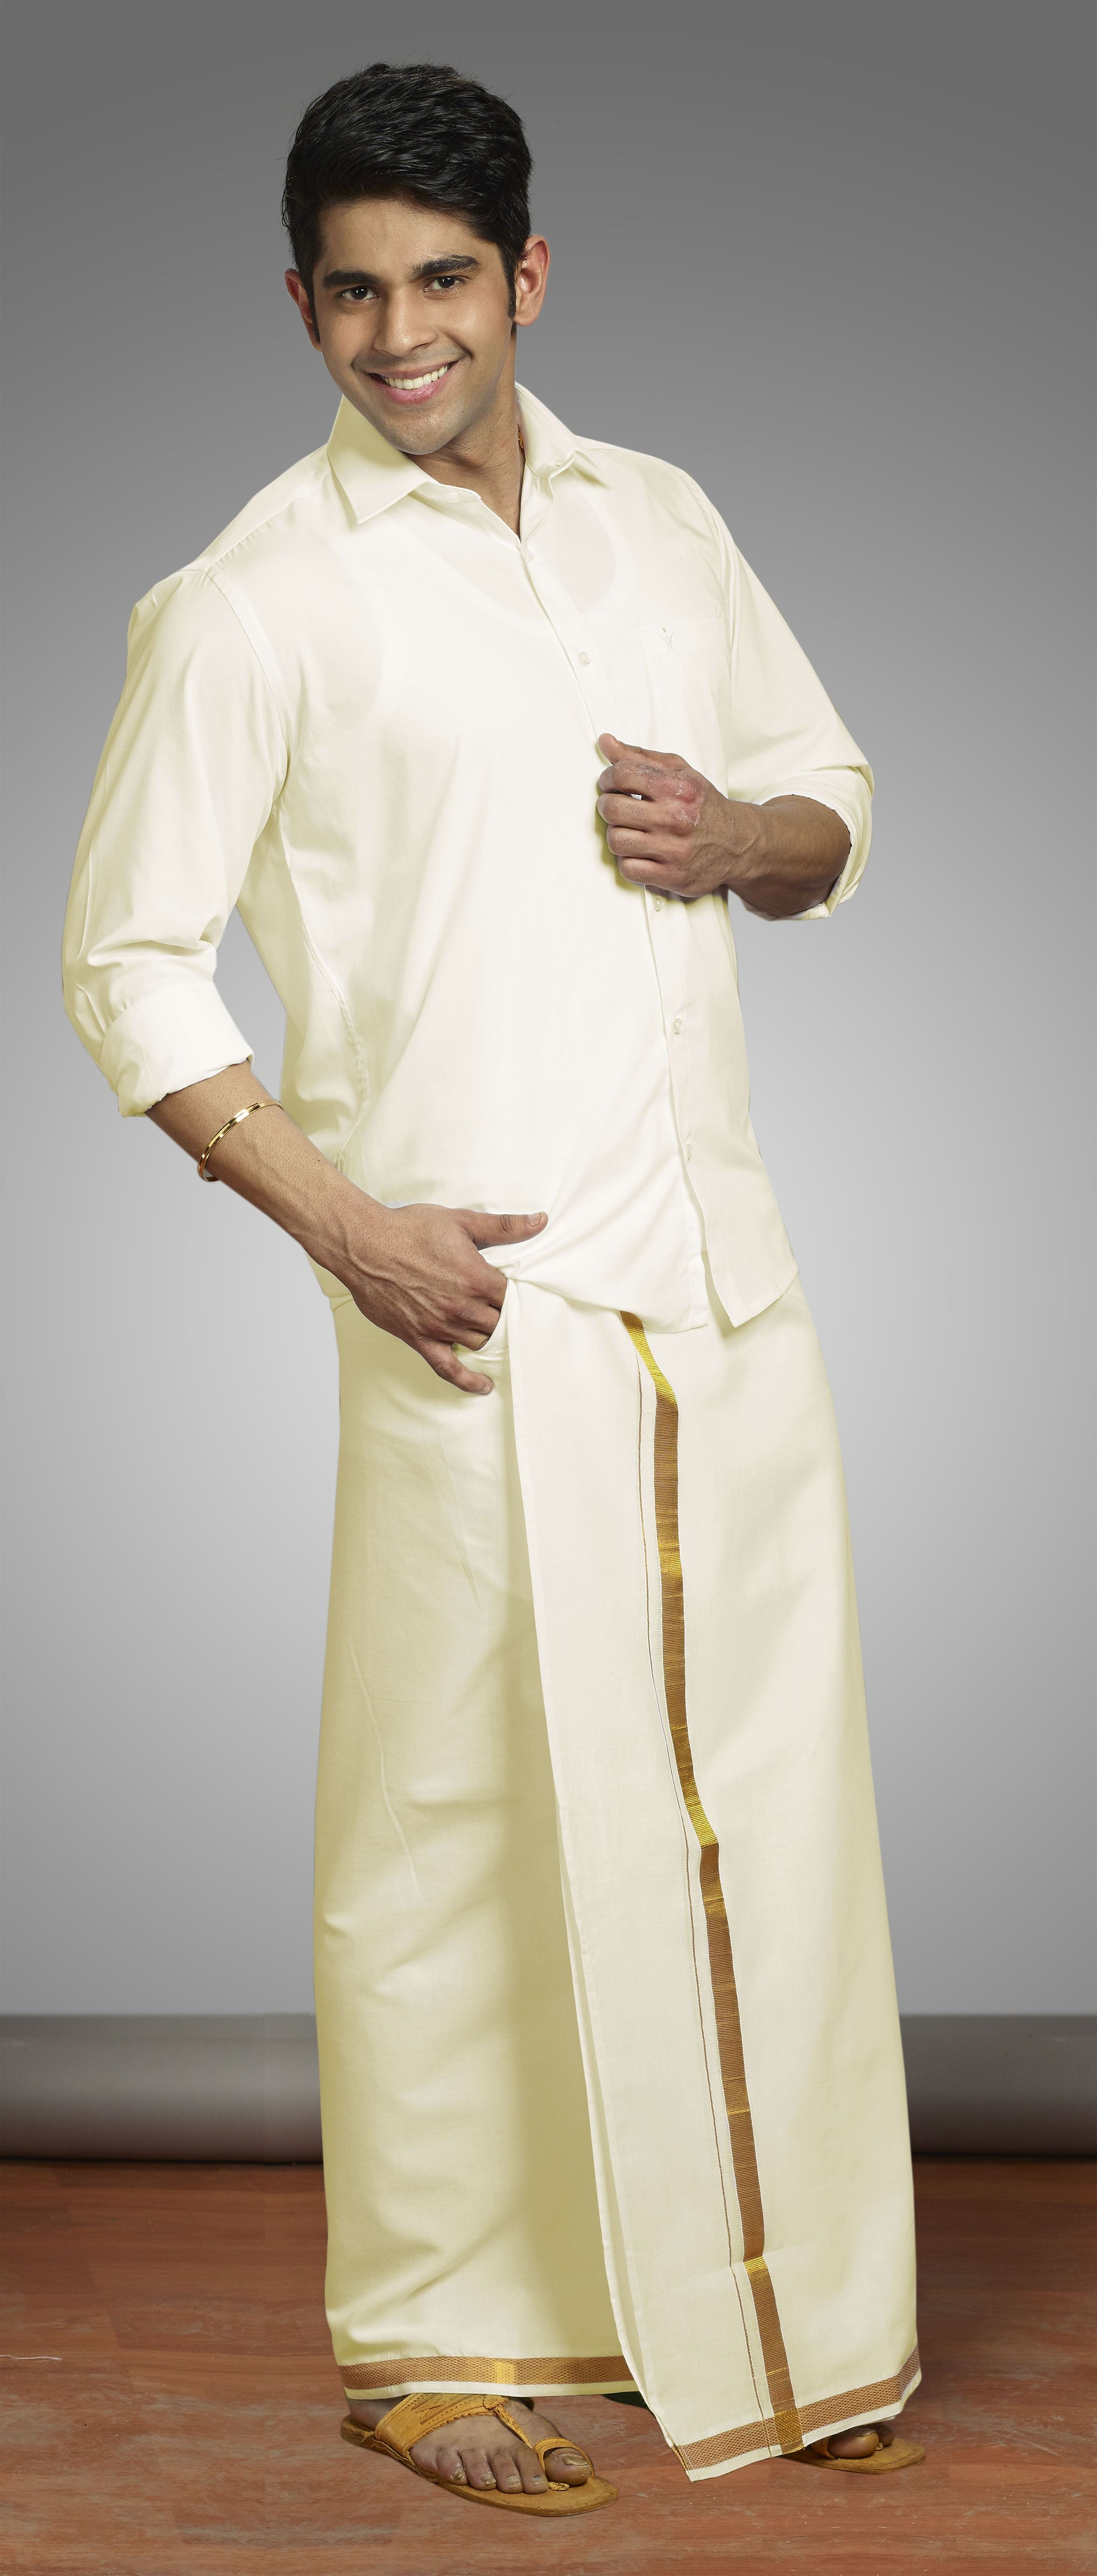 d7eb82c501 This is the traditional wedding attire of Kerala men, which is probably why  I have an affinity towards it. Moreover, this attire officially gets you  into ...